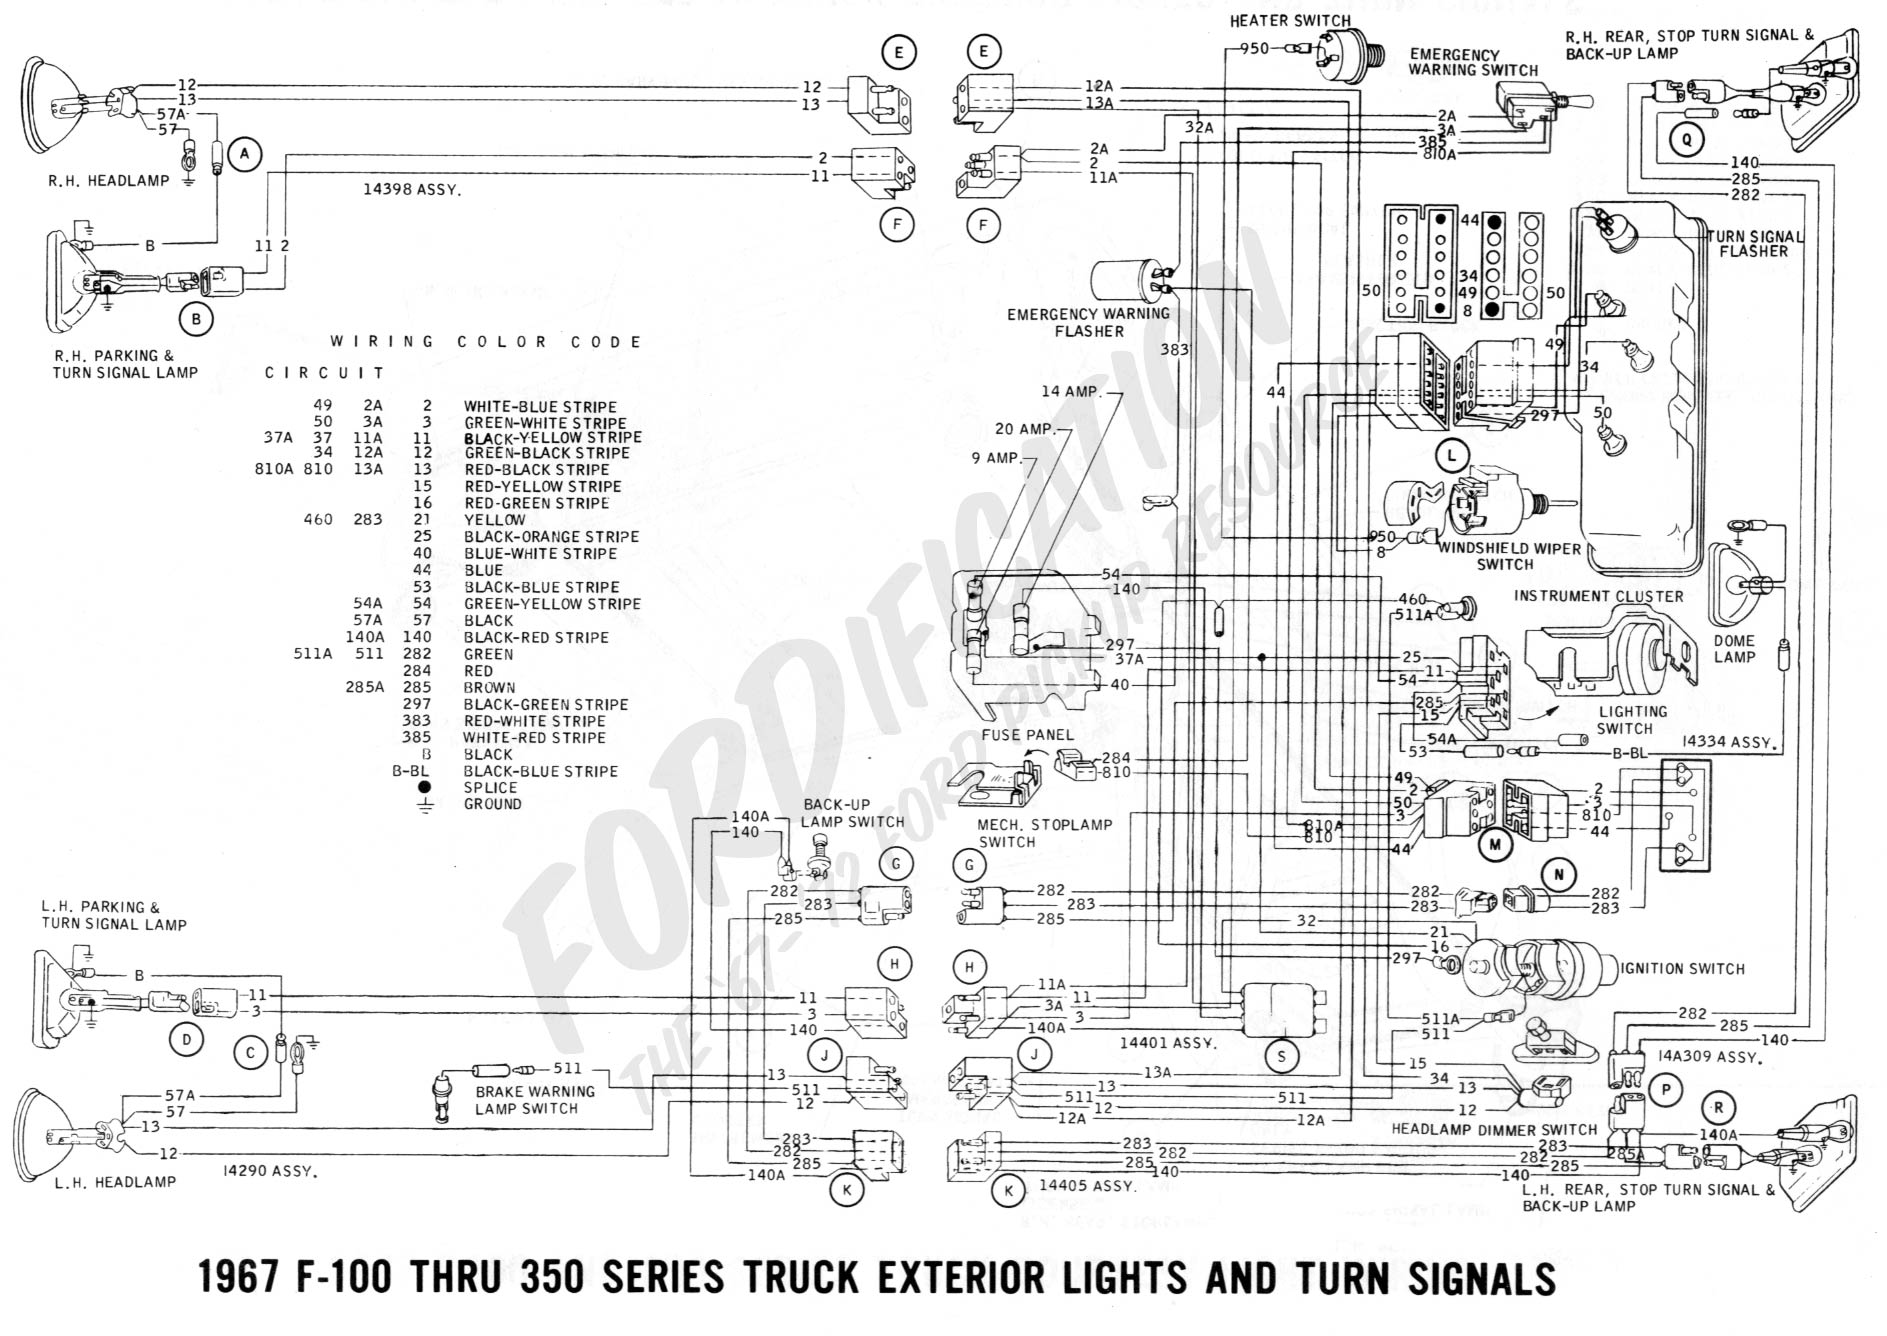 hight resolution of 06 ford f 350 wiring diagram wiring diagram hub ford f 350 wiring schematic 06 ford f 350 wiring diagram